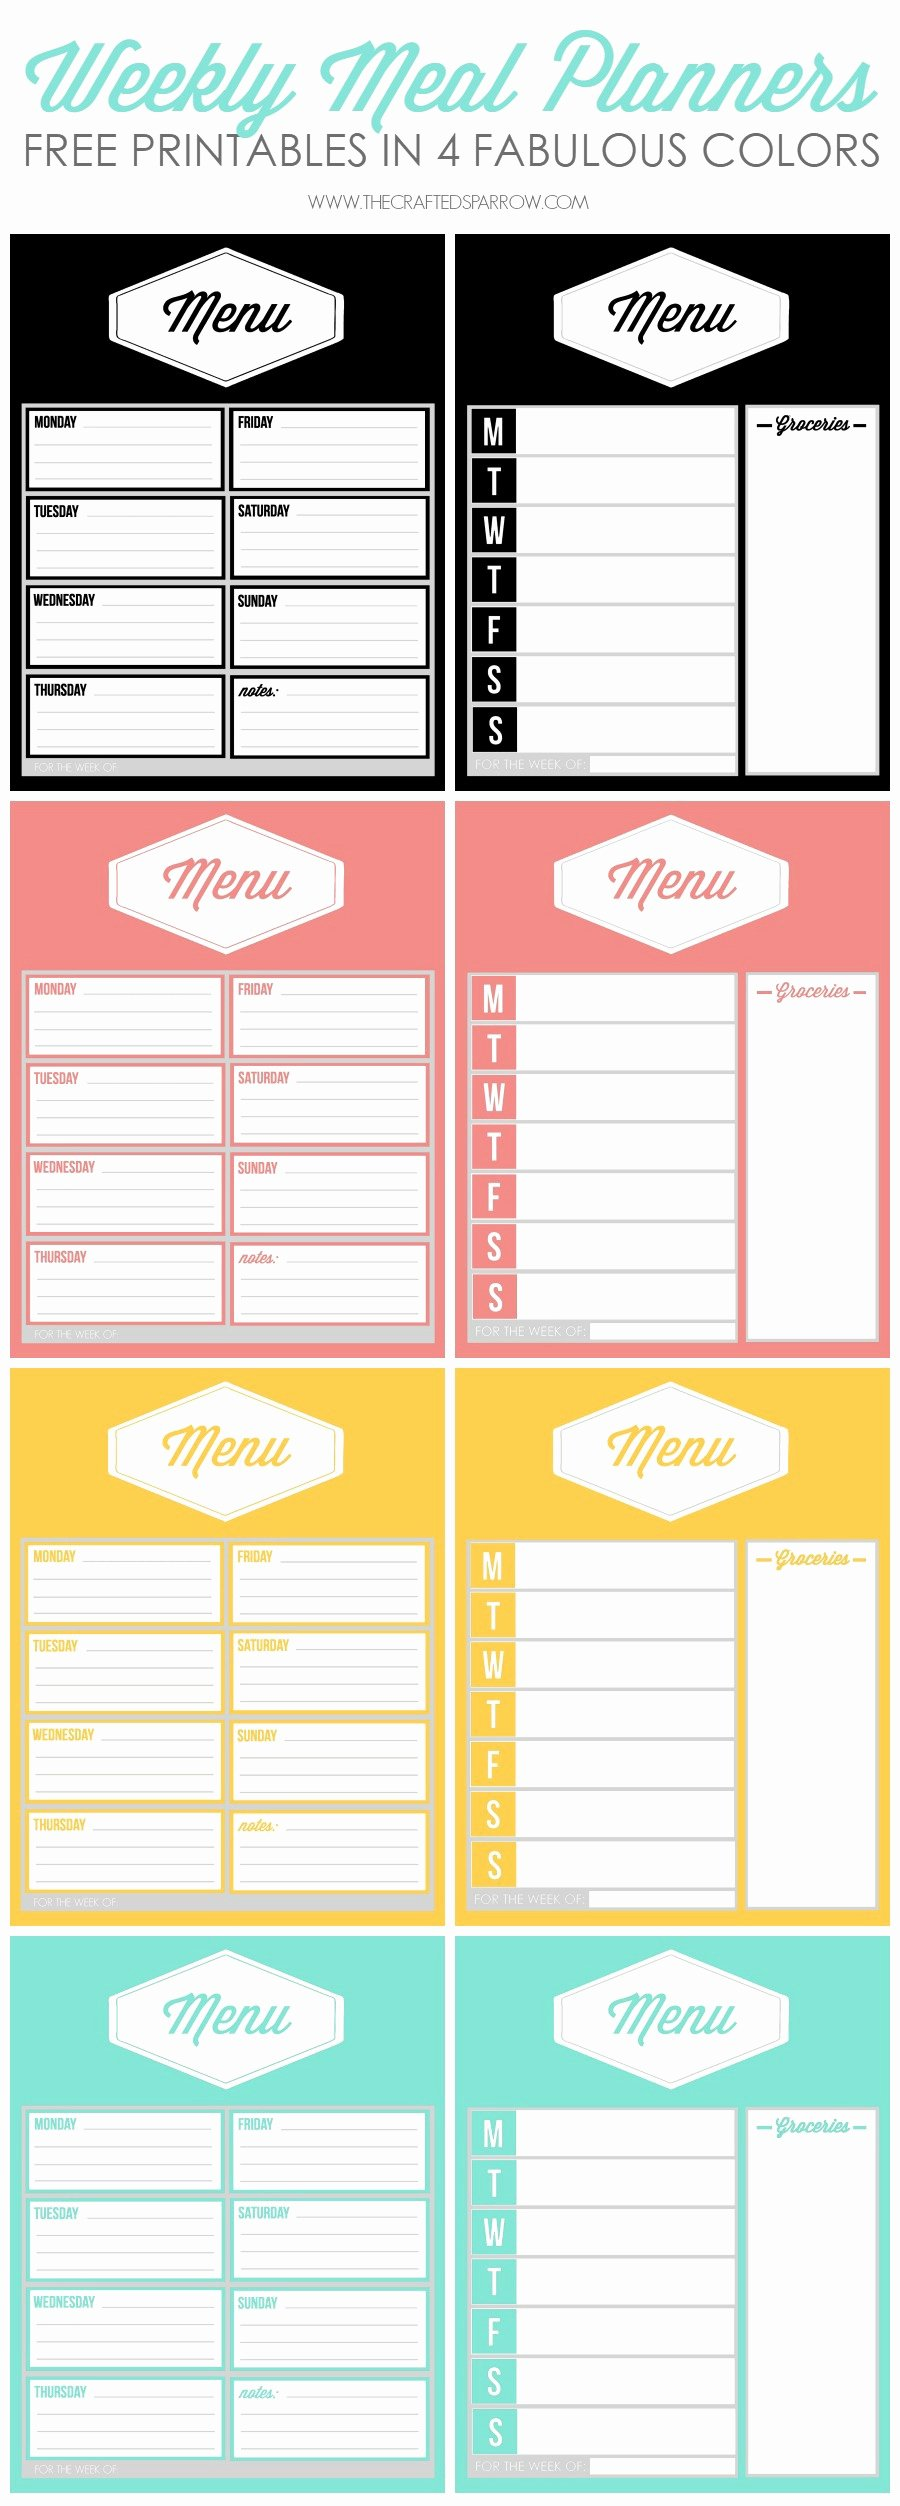 Free Menu Plan Template Inspirational Free Printable Weekly Meal Planners